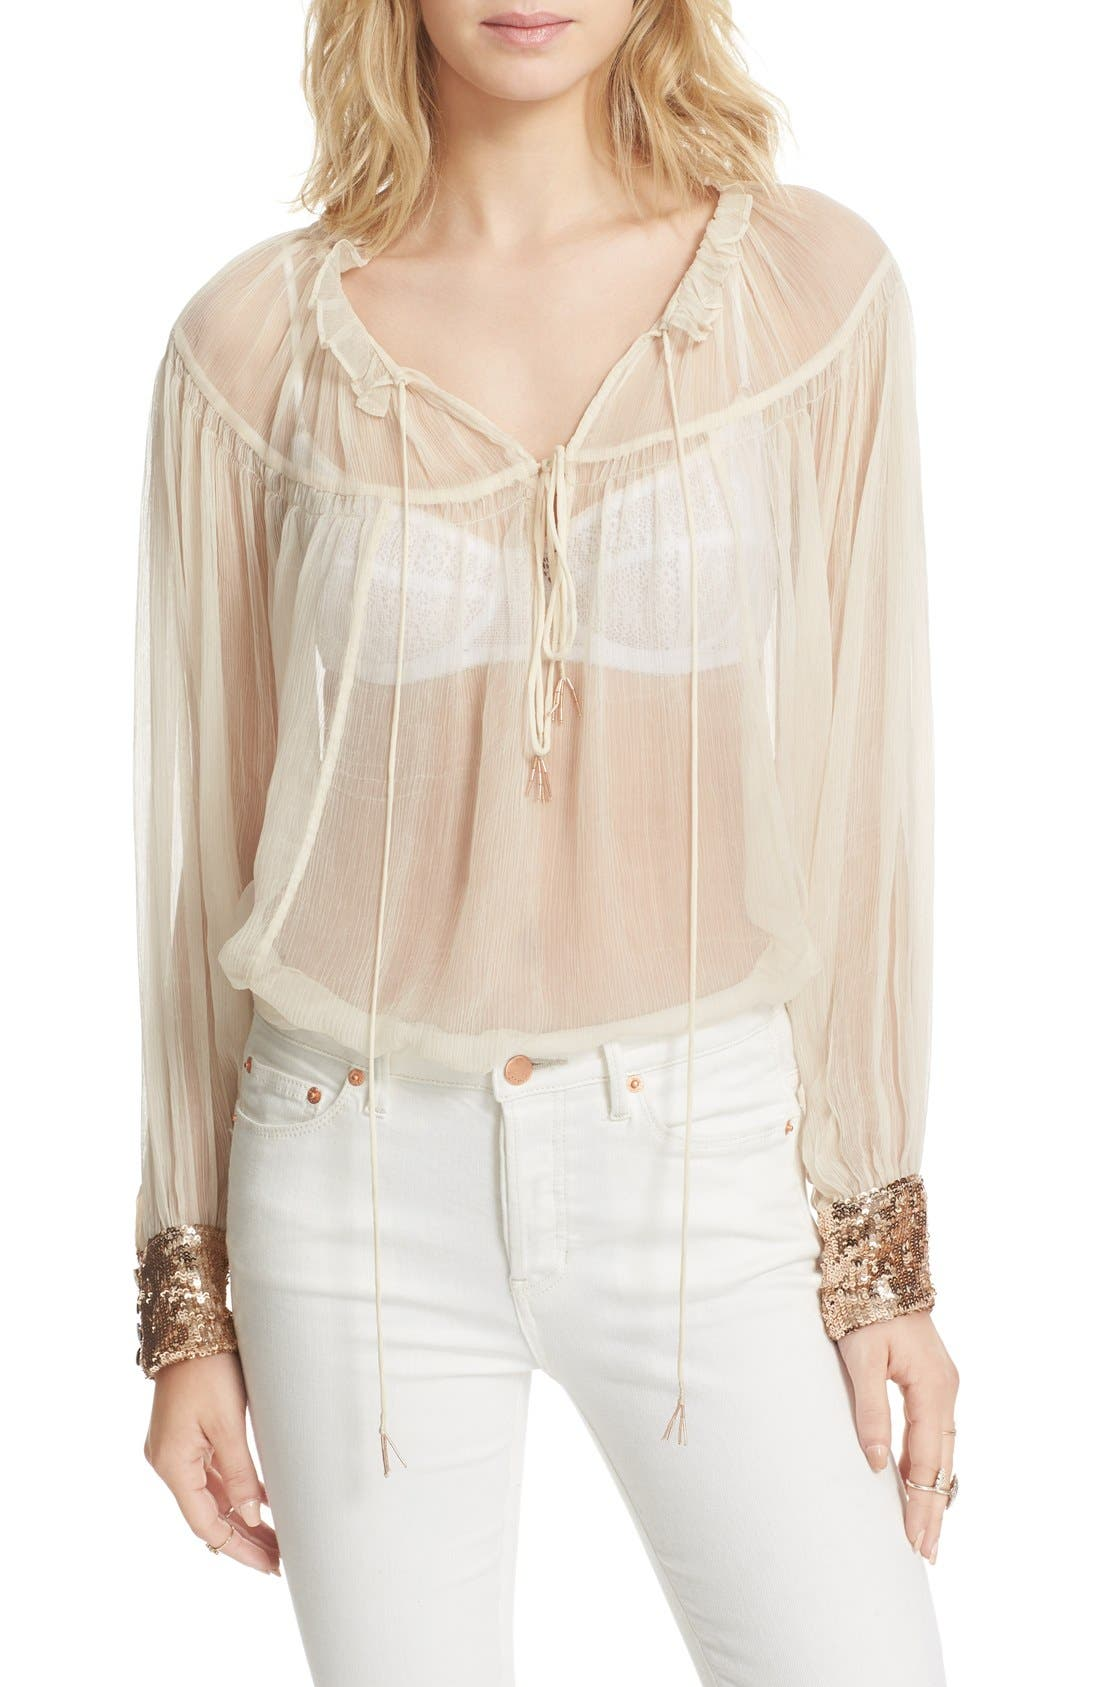 Dream Cuff Blouse,                         Main,                         color, Ivory